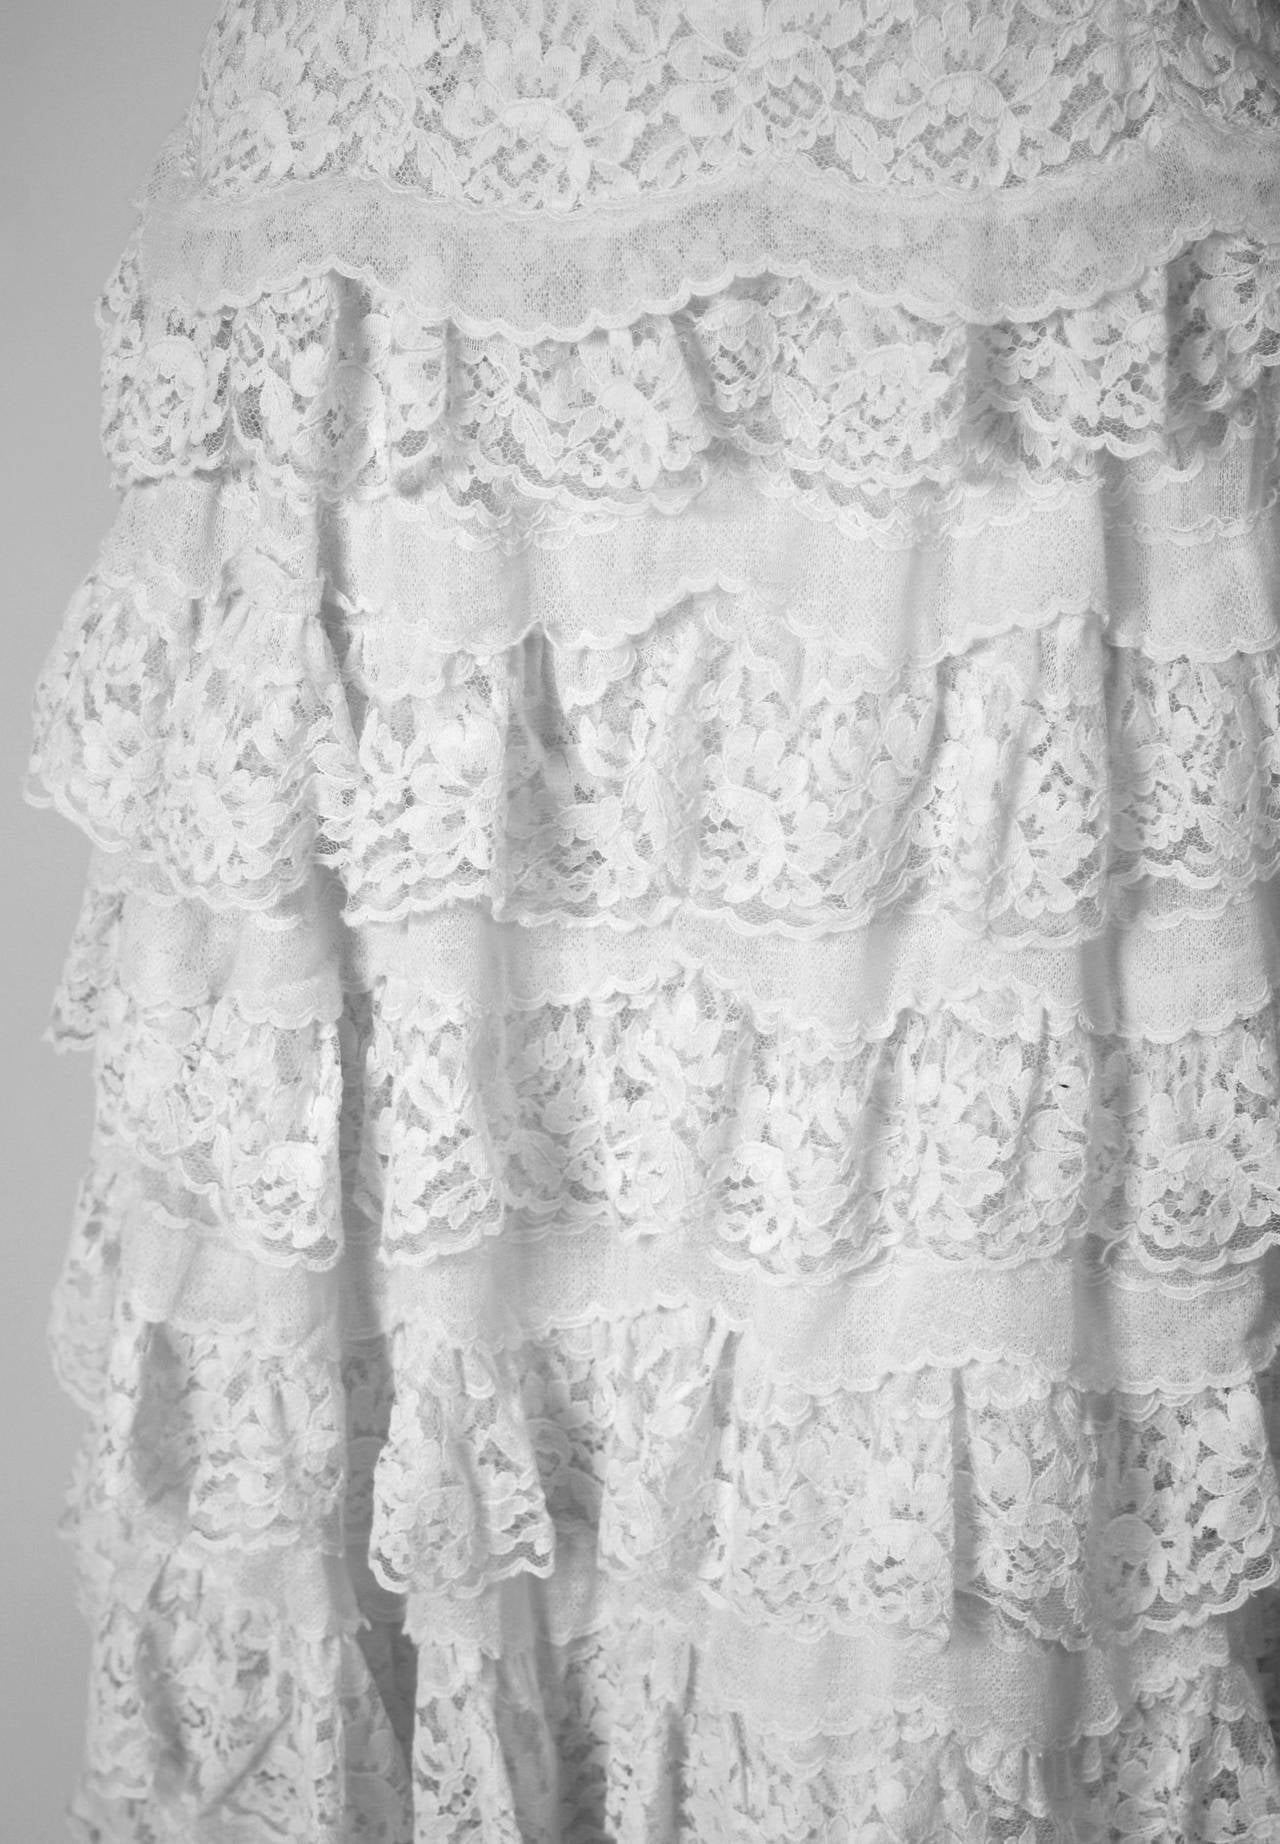 1962 Christian Dior Paris Demi-Couture White Tiered Ruffle Lace Formal Gown 5